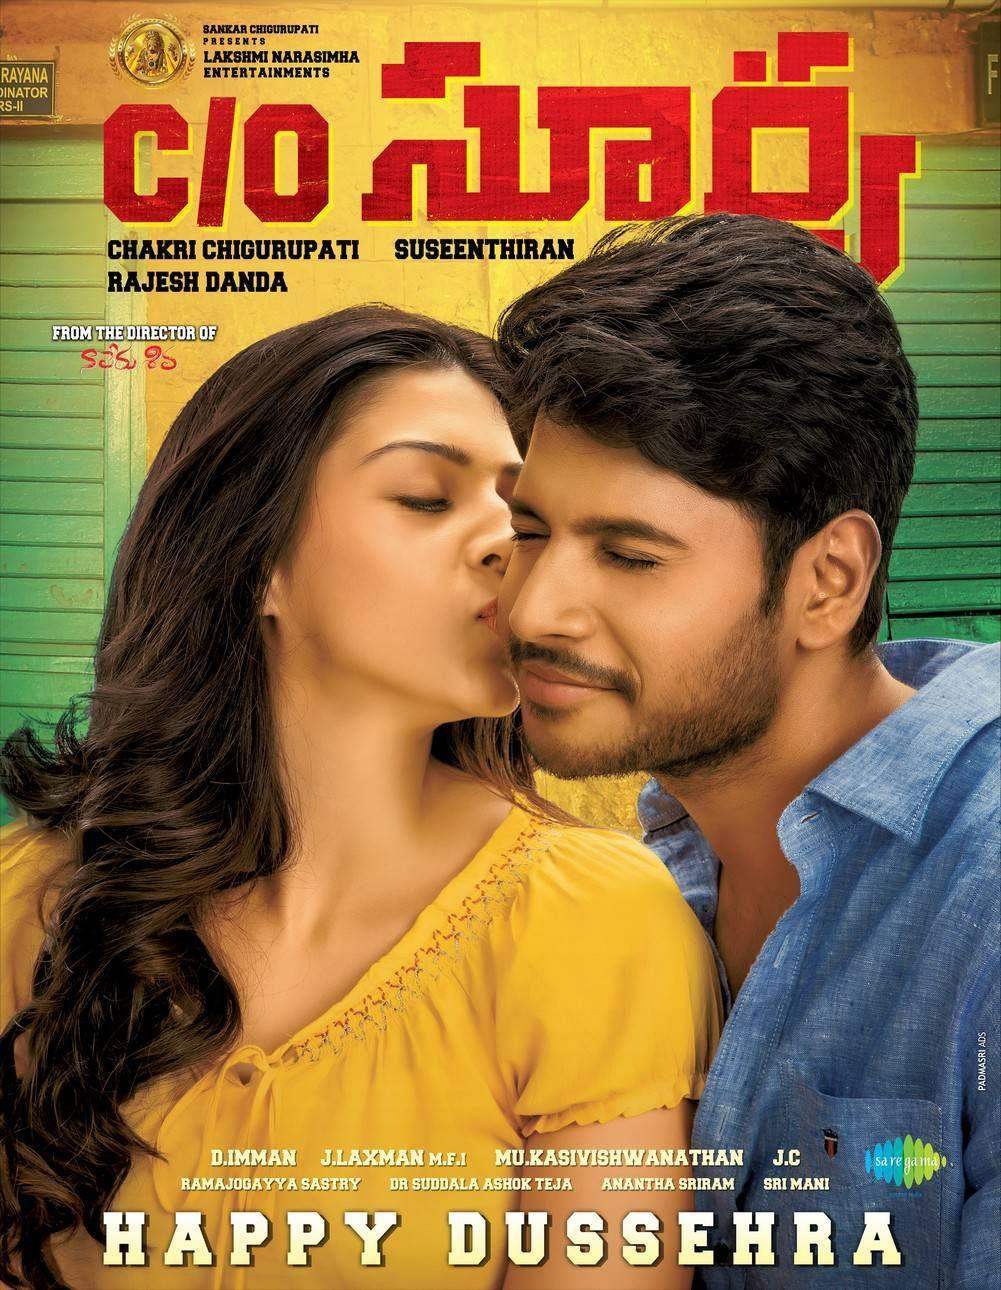 Sundeep kishan co surya movie release wallpapers thecheapjerseys Image collections